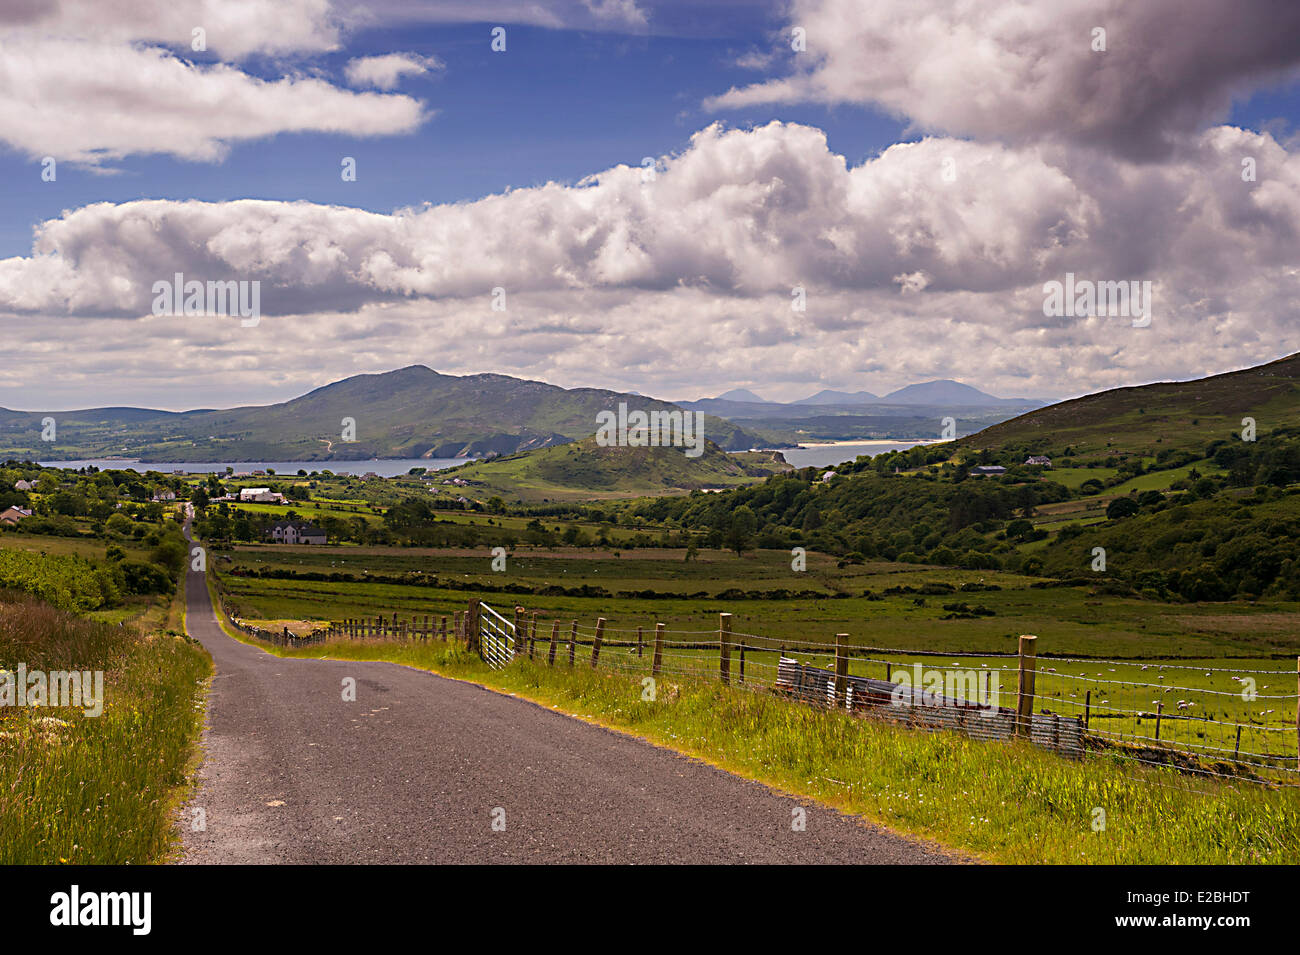 Country road in North West Donegal from the Mamore Gap, Inishowen Peninsula, Donegal, Ireland - Stock Image